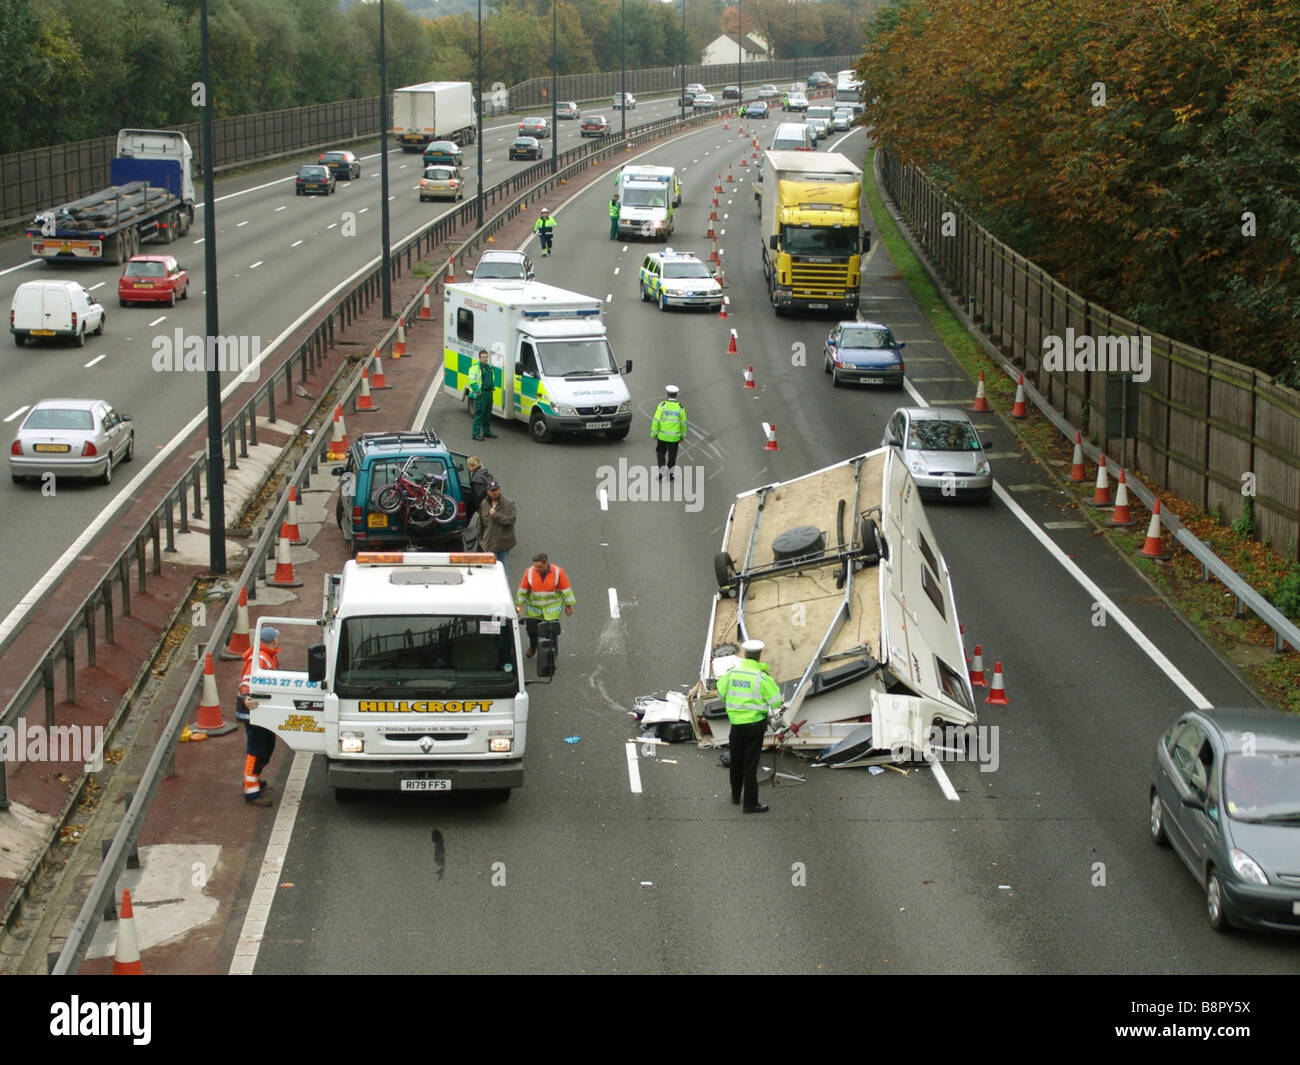 Accident on M4 motorway near the city of Newport South Wales